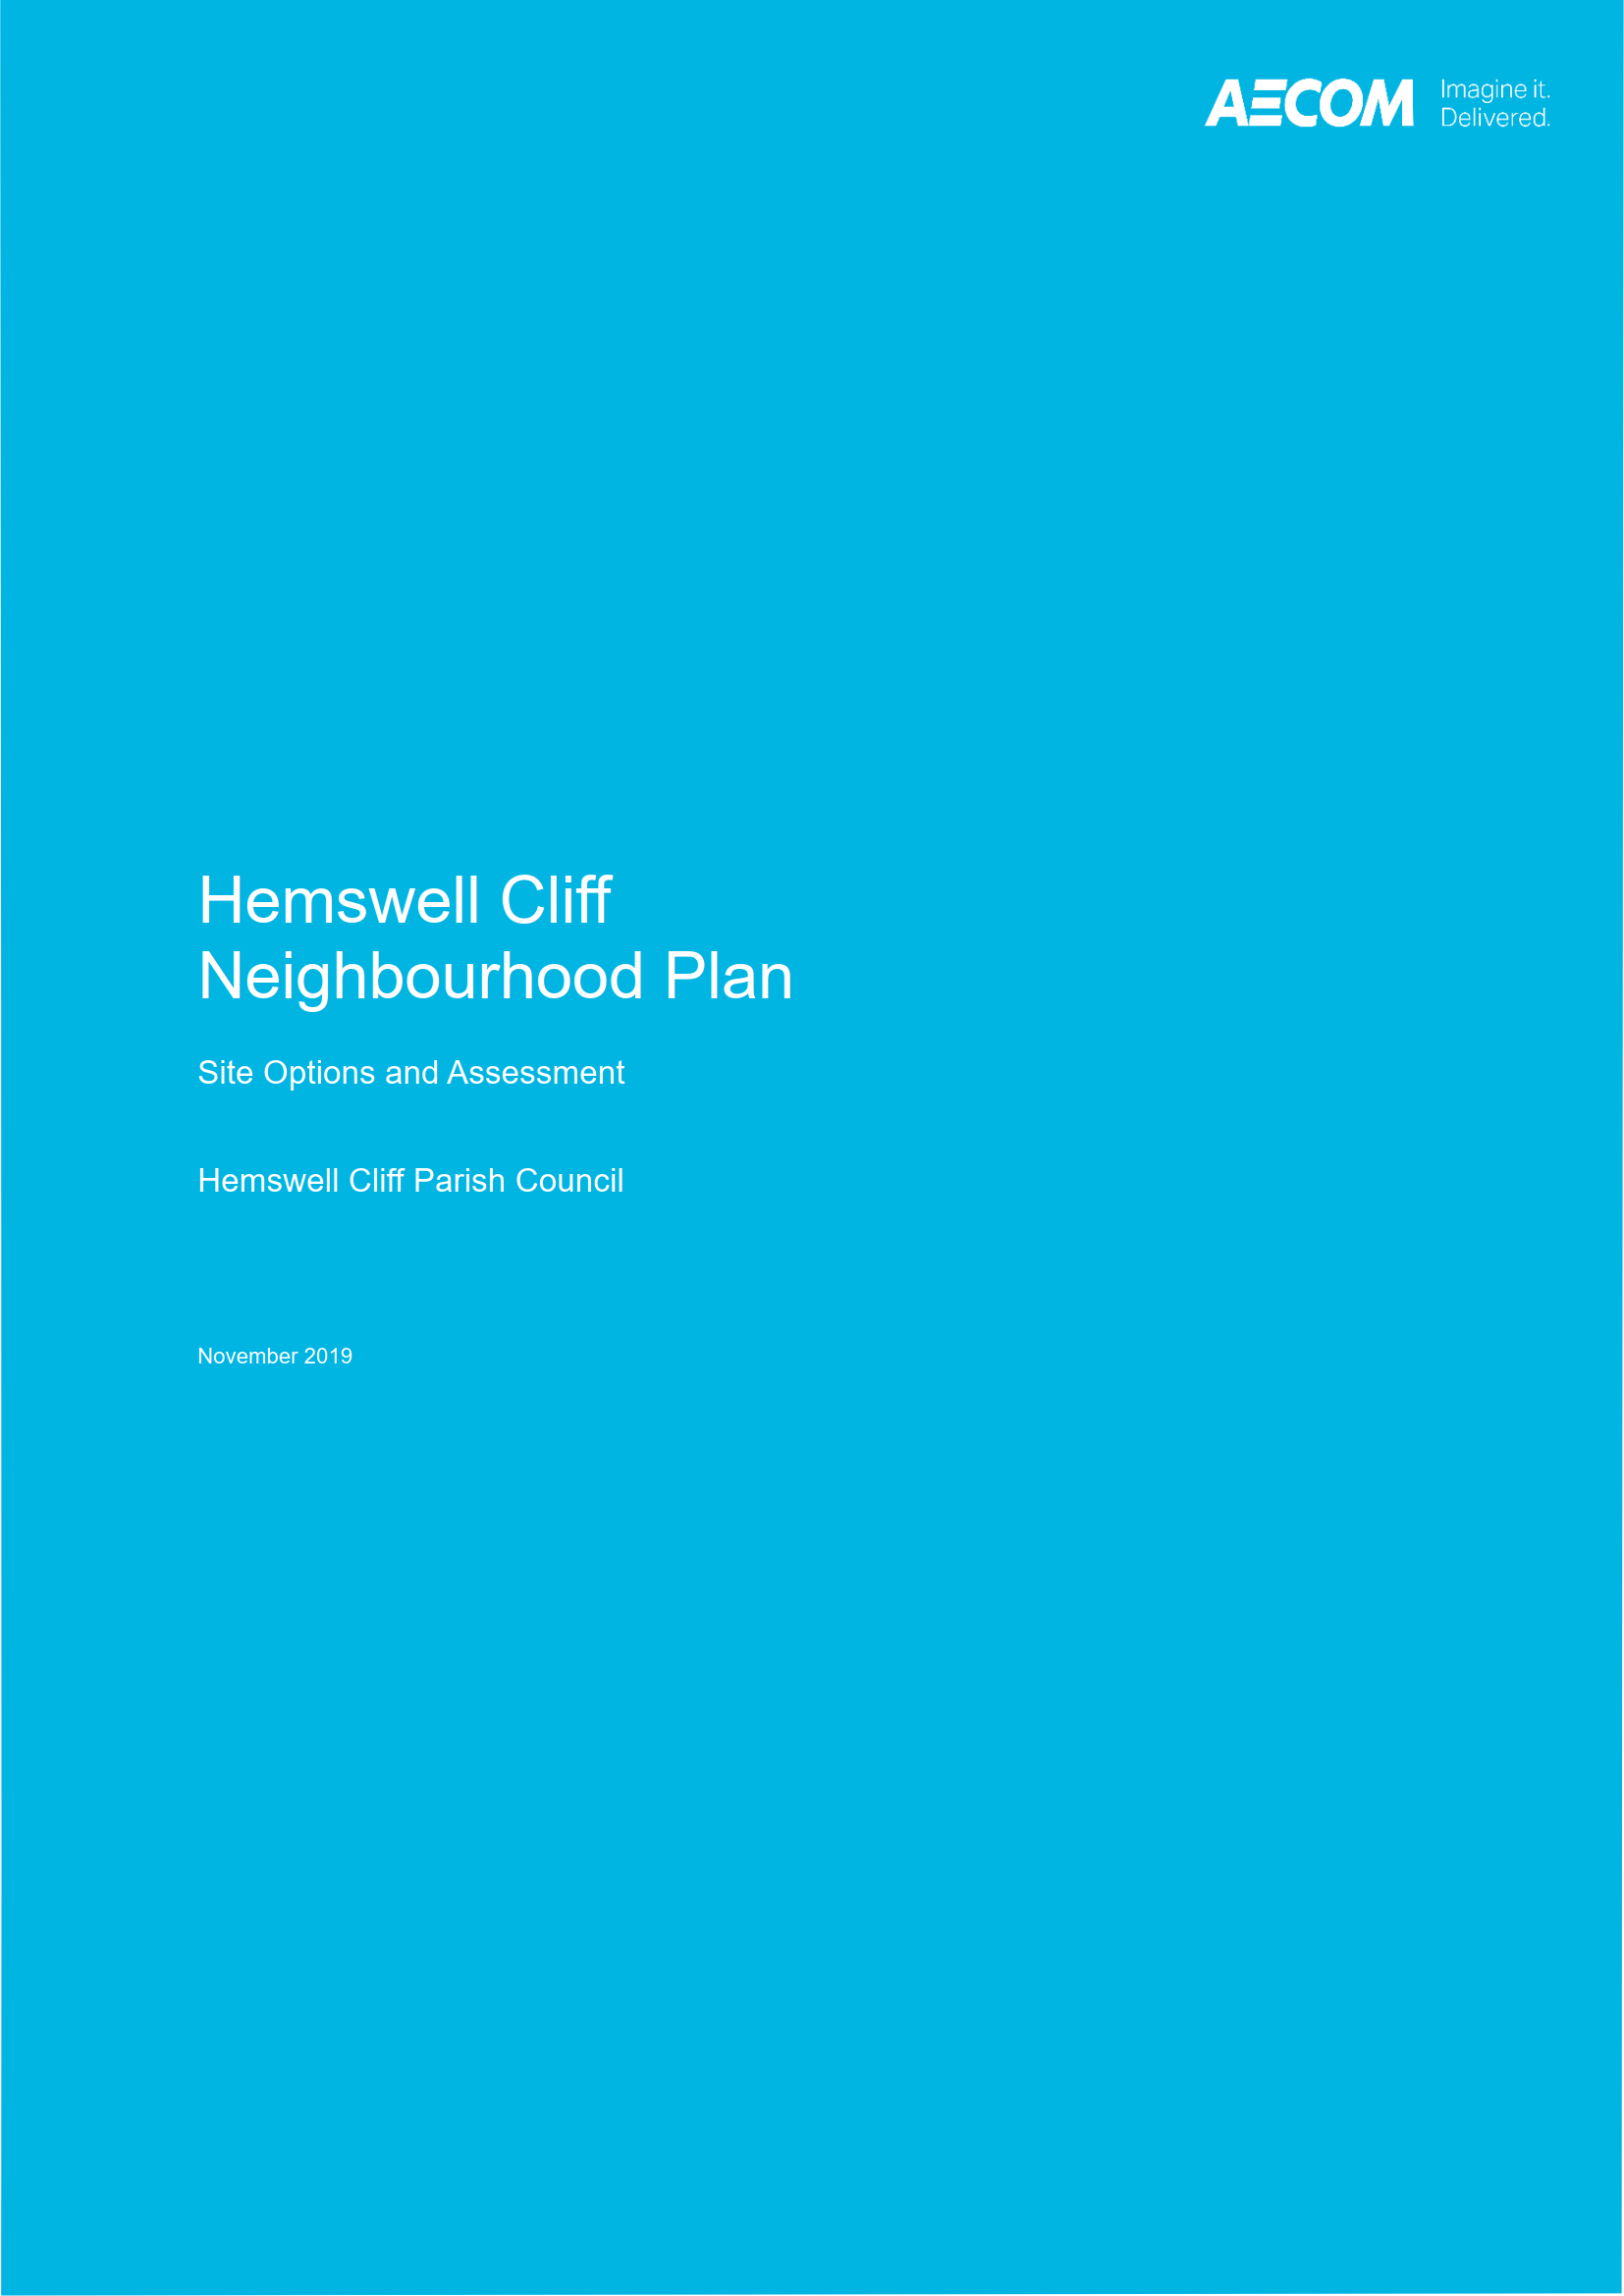 Hemswell_Cliff_Site_Options_and_Assessment_Final_041119-2_01.png